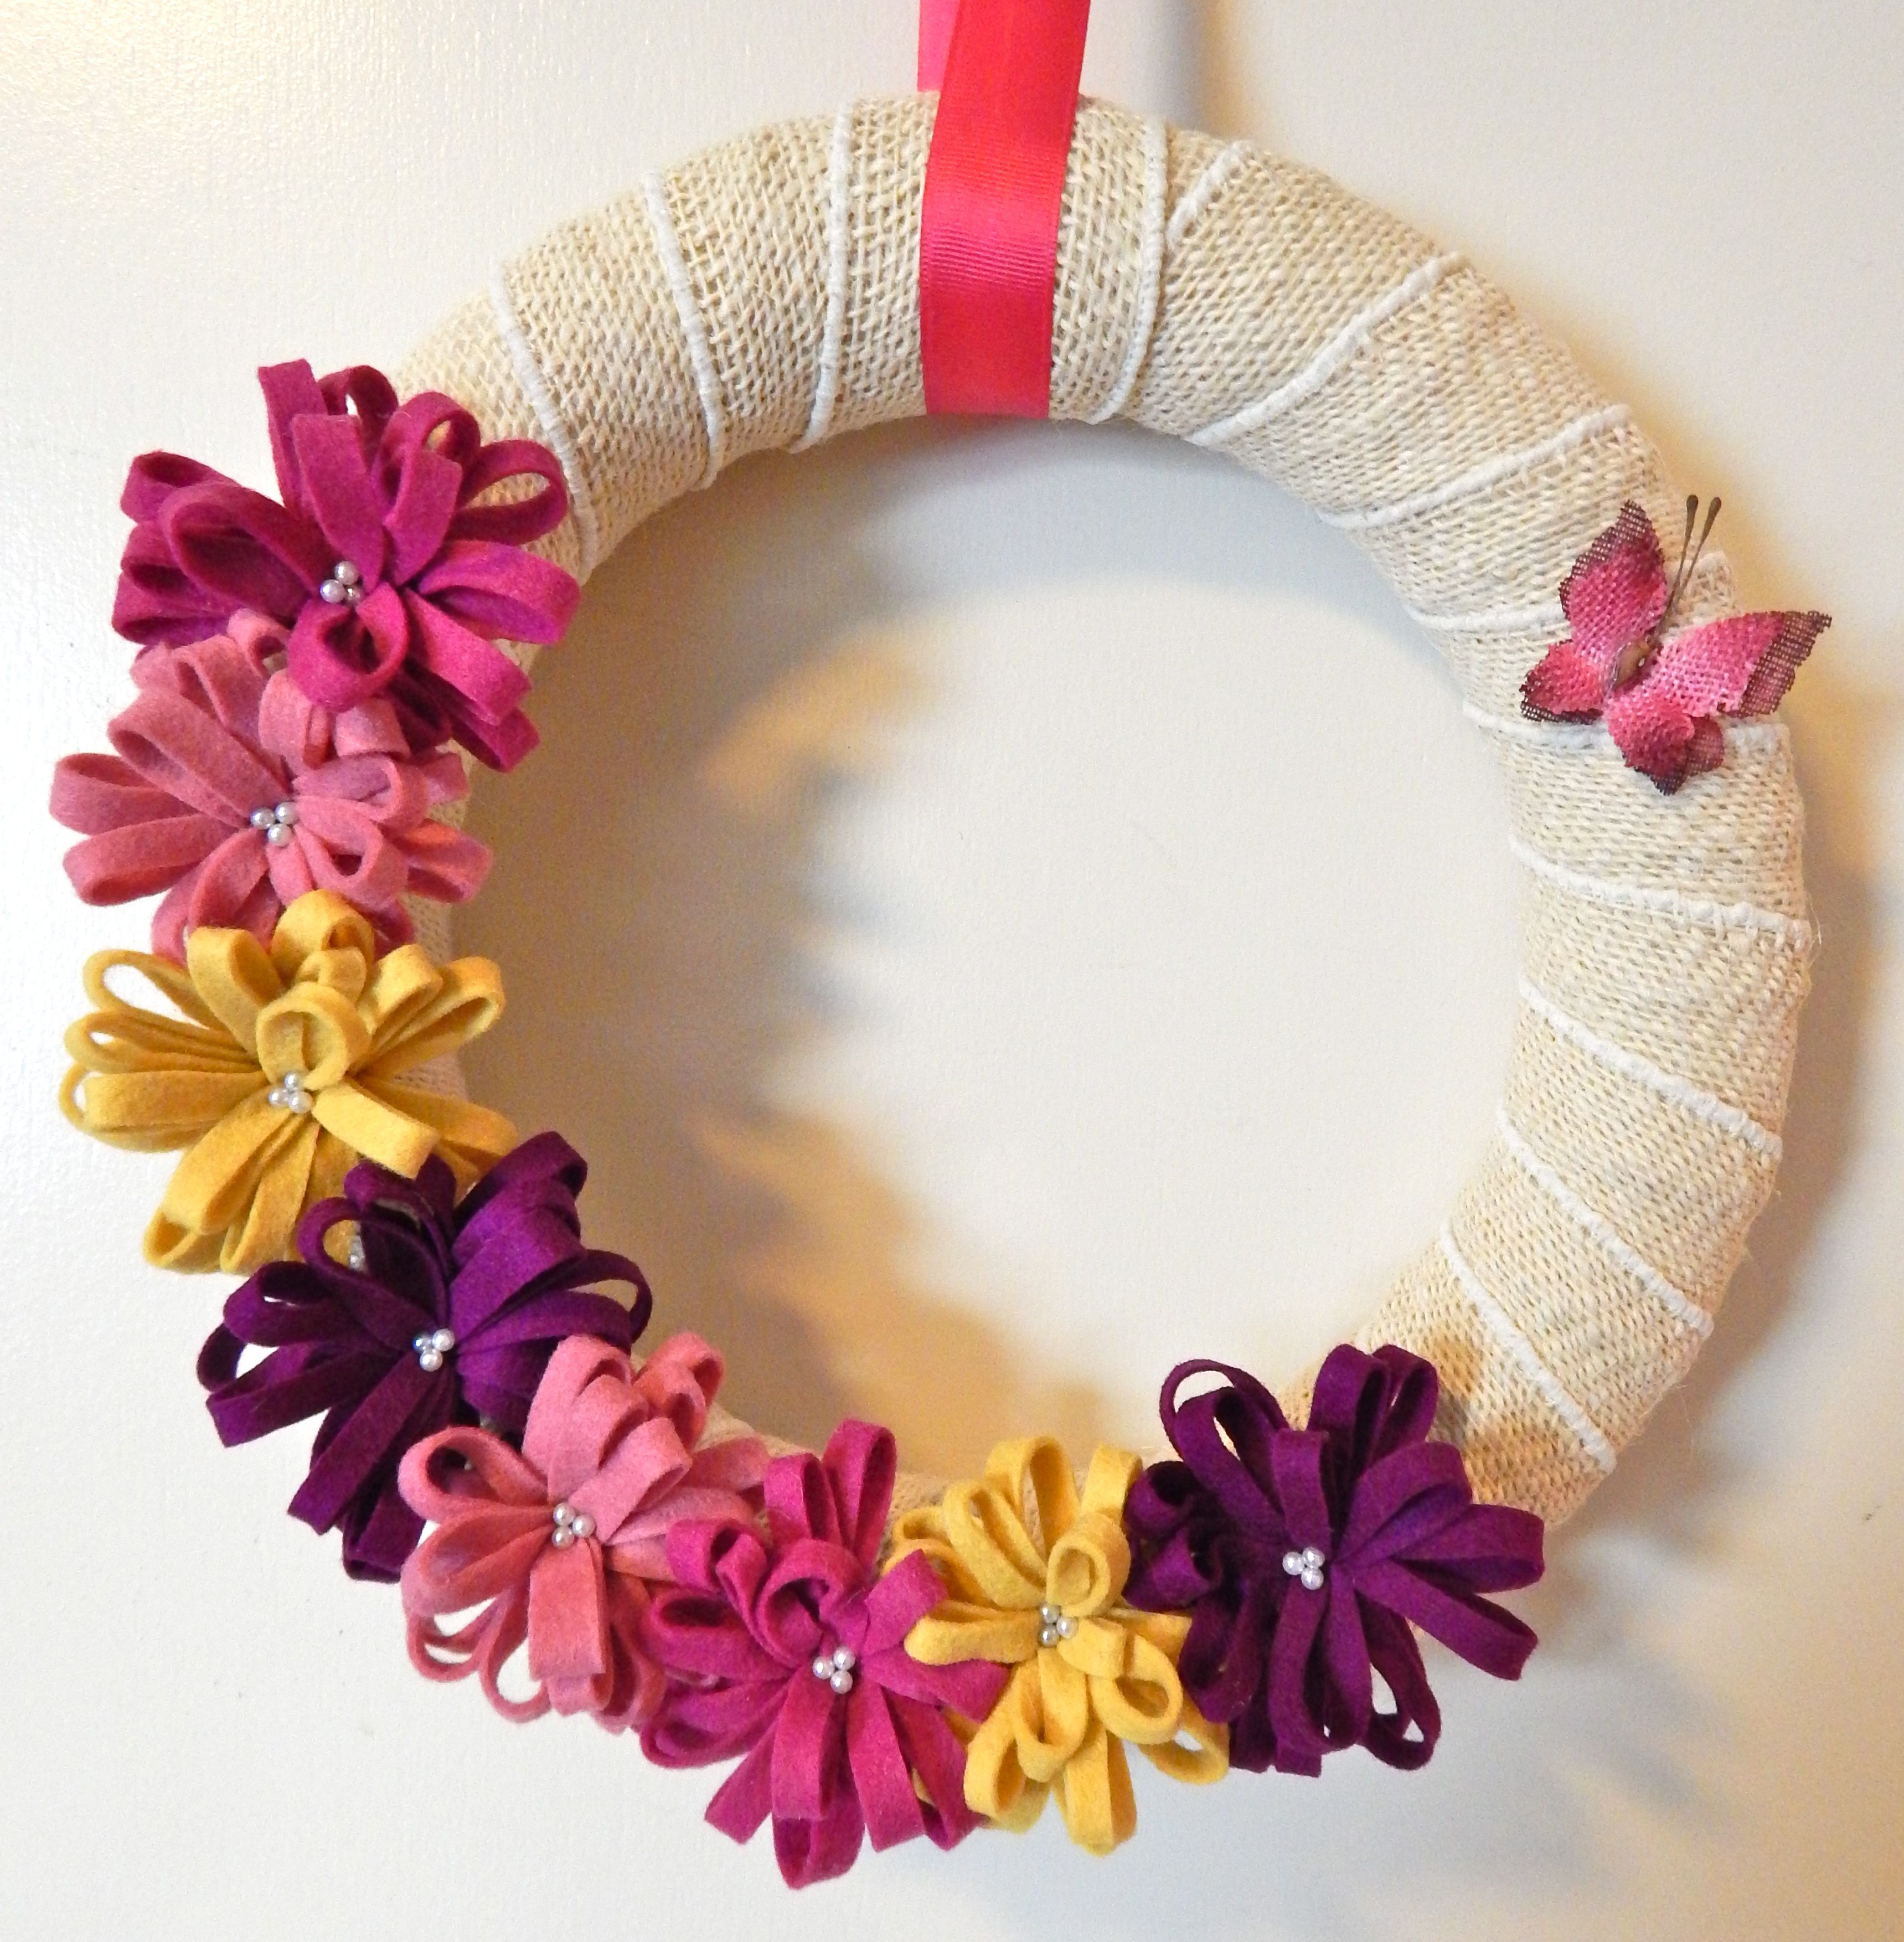 ***Handmade Everyday & Holiday Door Wreaths*** By Thebeautifuldoor